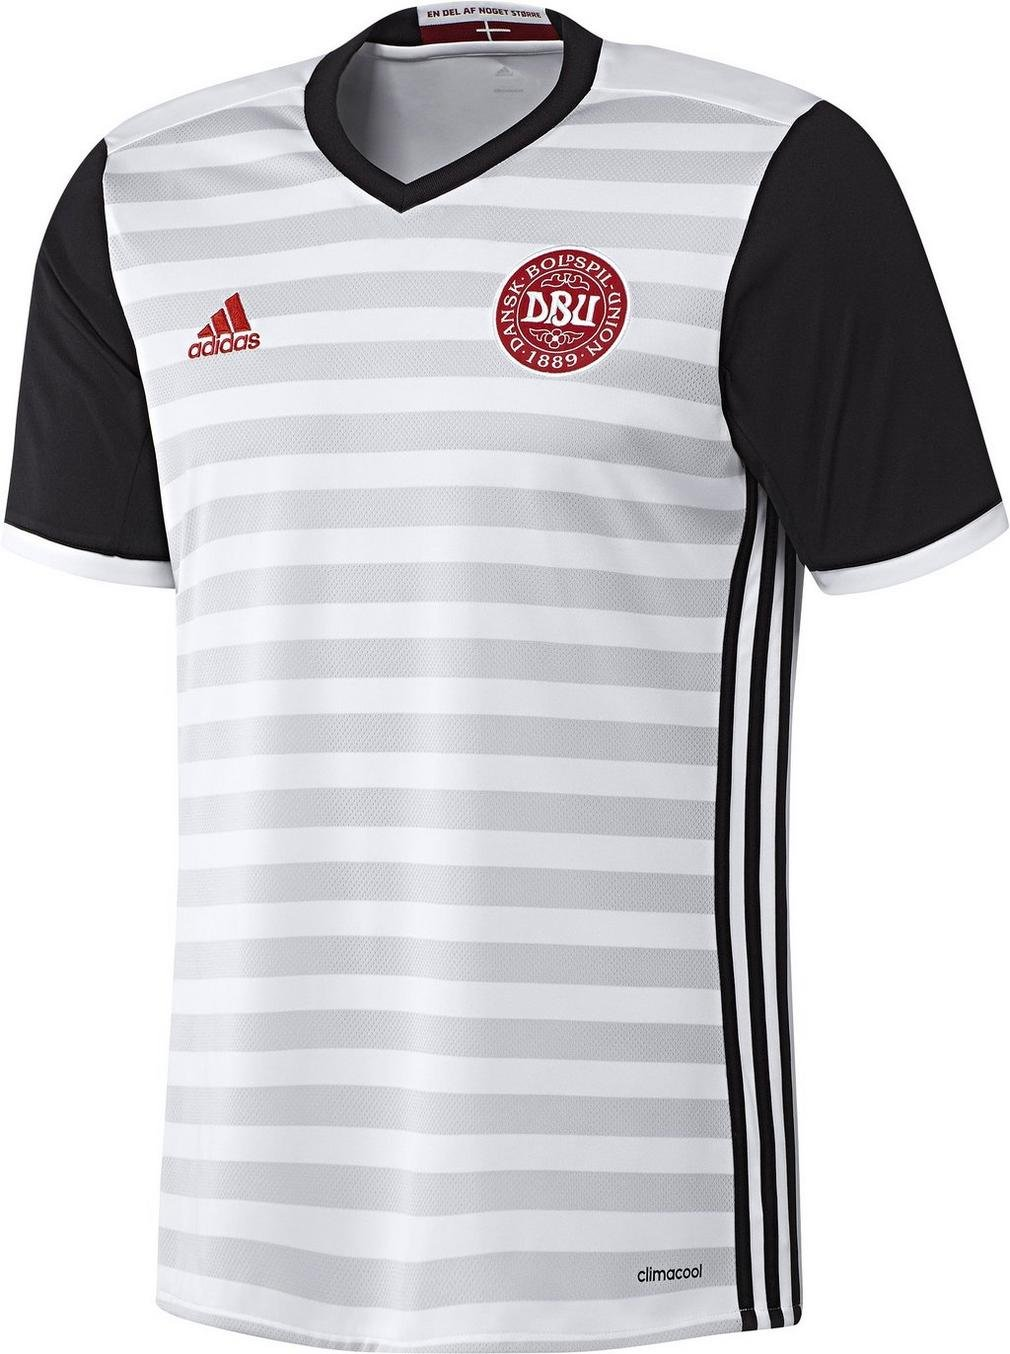 2016-2017 Denmark Away Adidas Football Shirt (Kids) A99913